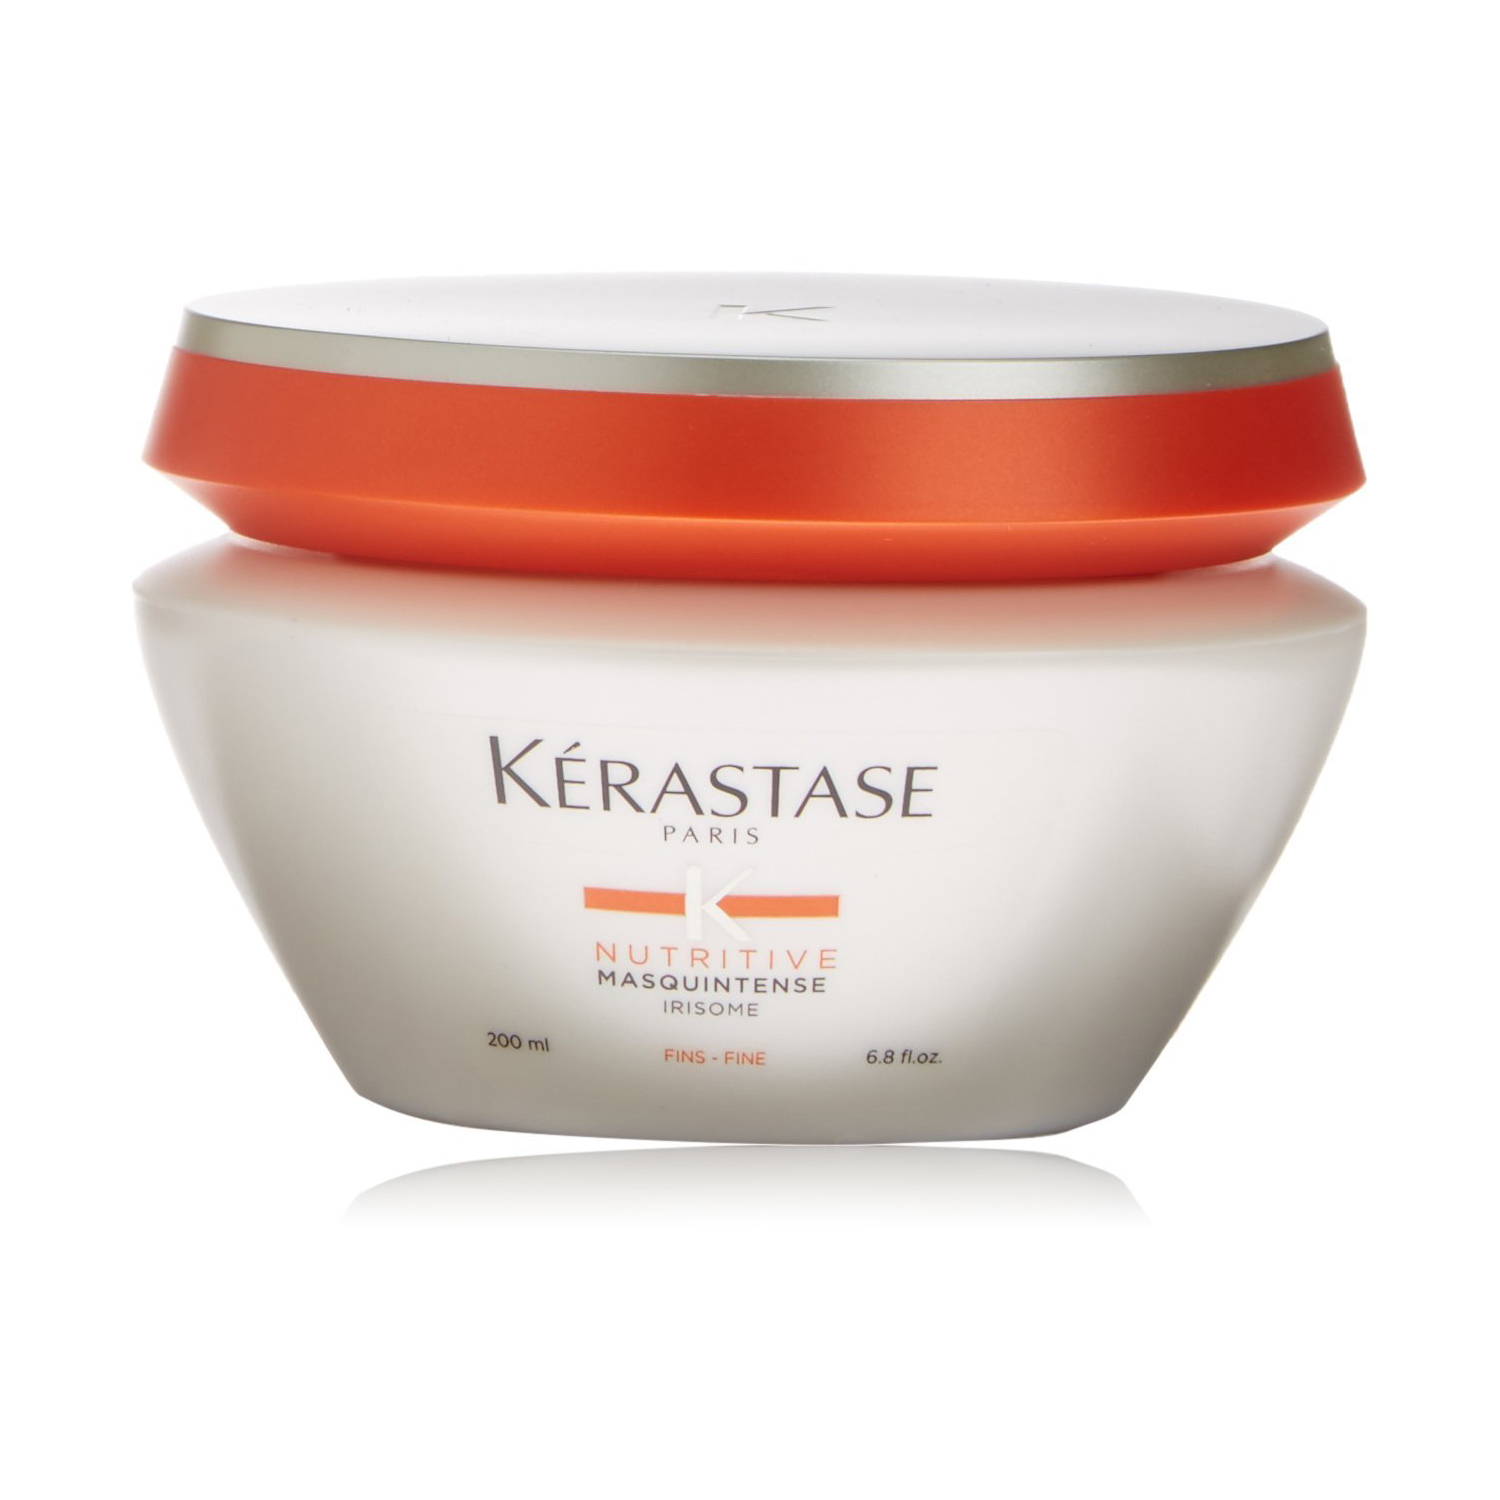 Kerastase Nutritive Exceptionally Concentrated Nourishing Treatment Mask Masquin - $43.60